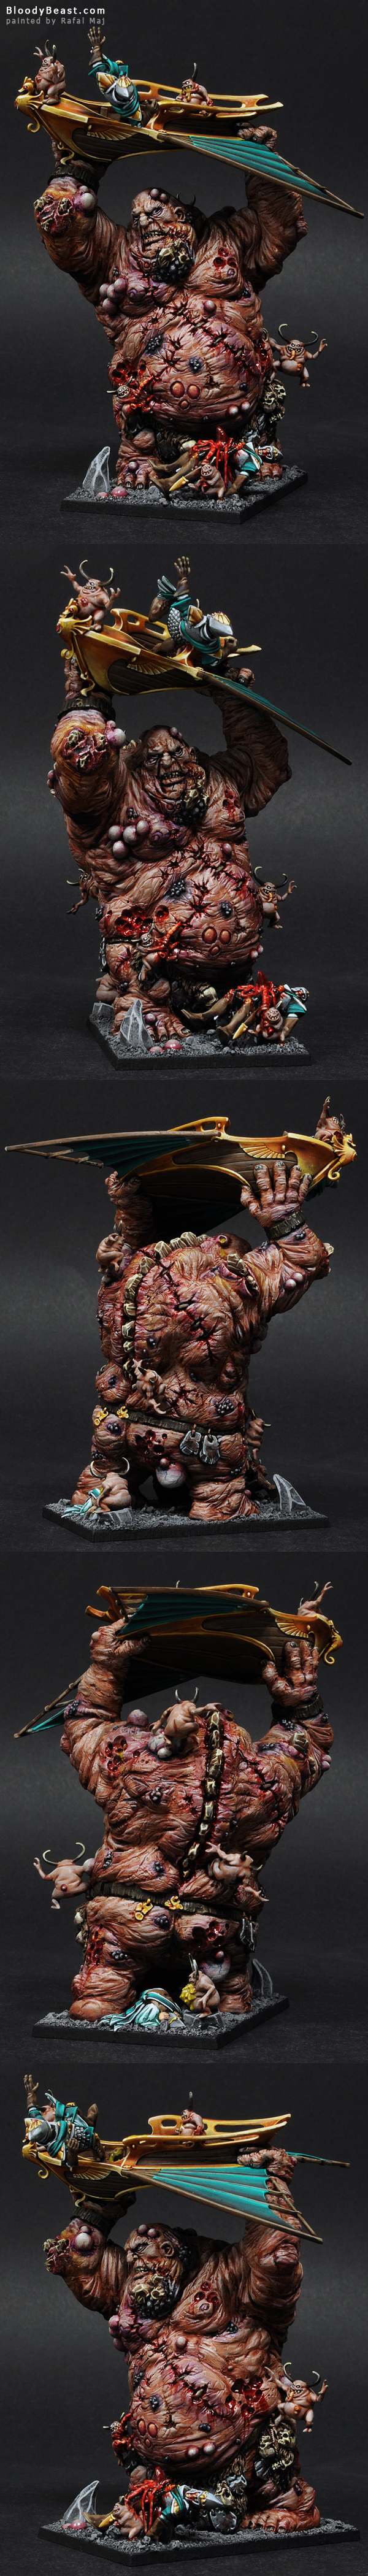 Nurgle Giant painted by Rafal Maj (BloodyBeast.com)